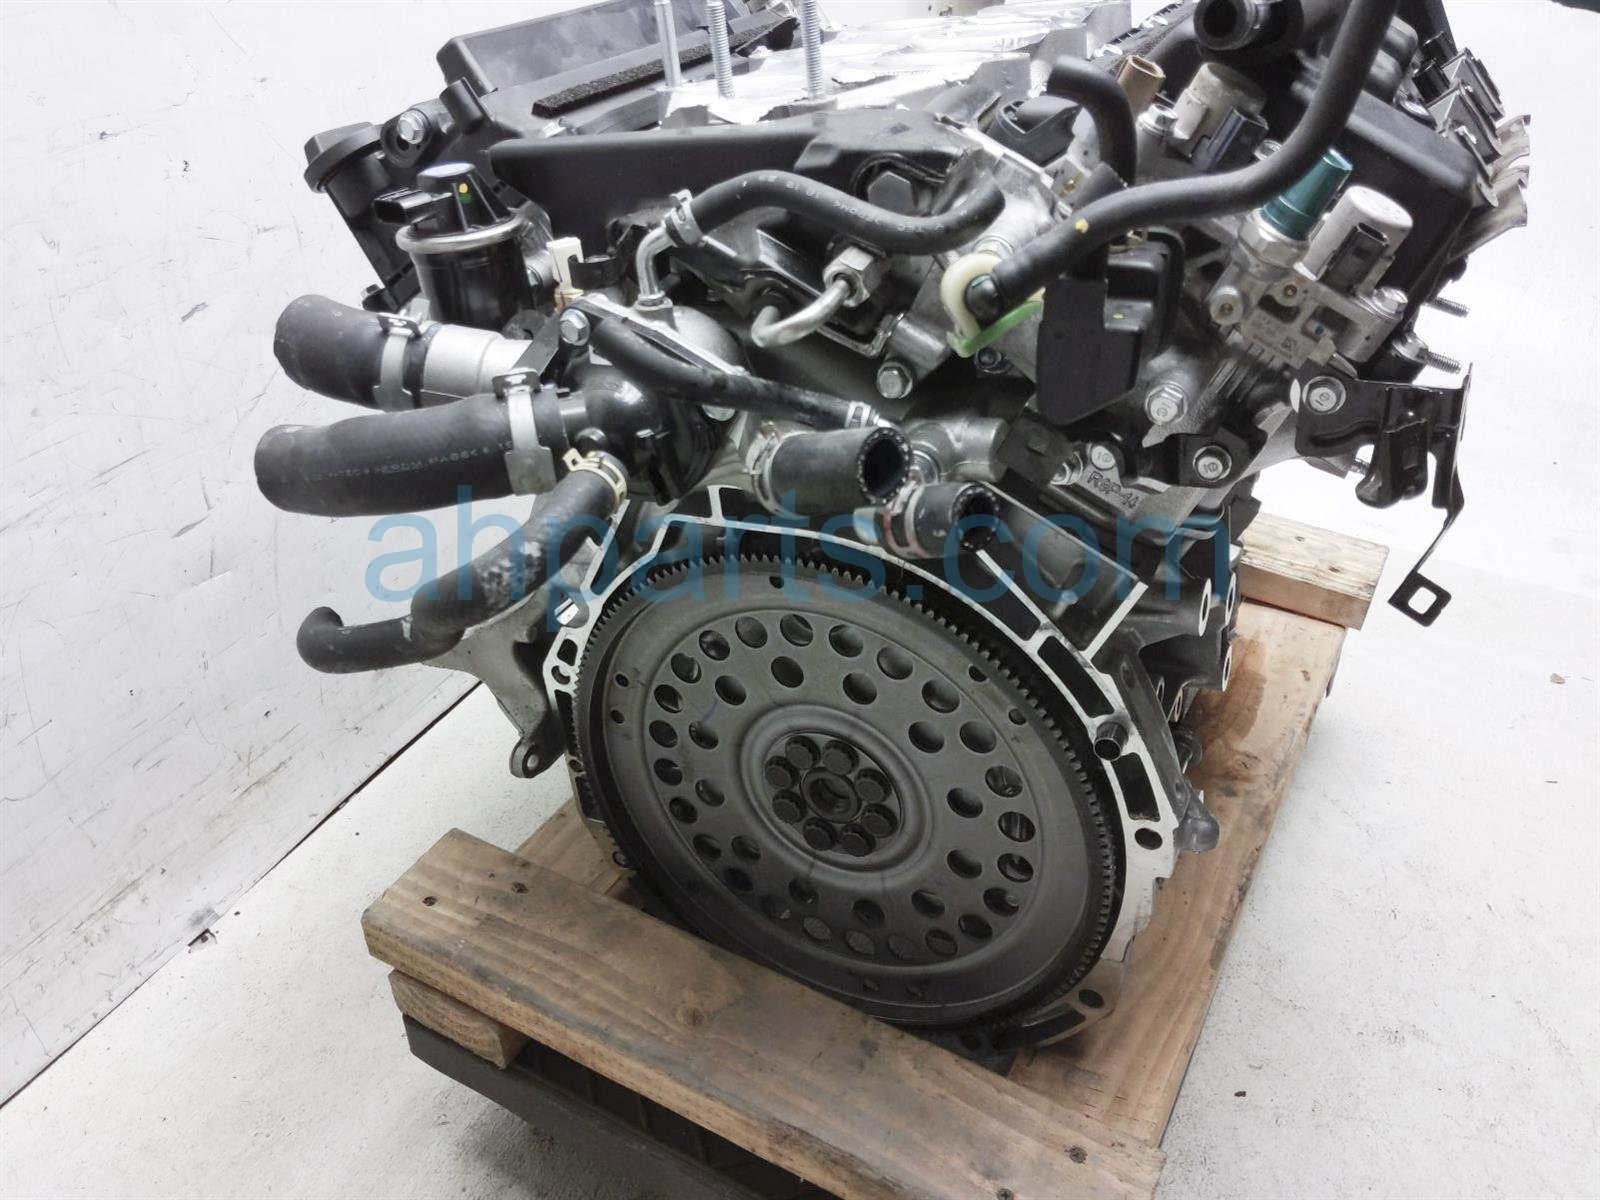 2019 Honda Passport Motor / Engine = 2k Miles   Check 10002 5J6 A12 Replacement